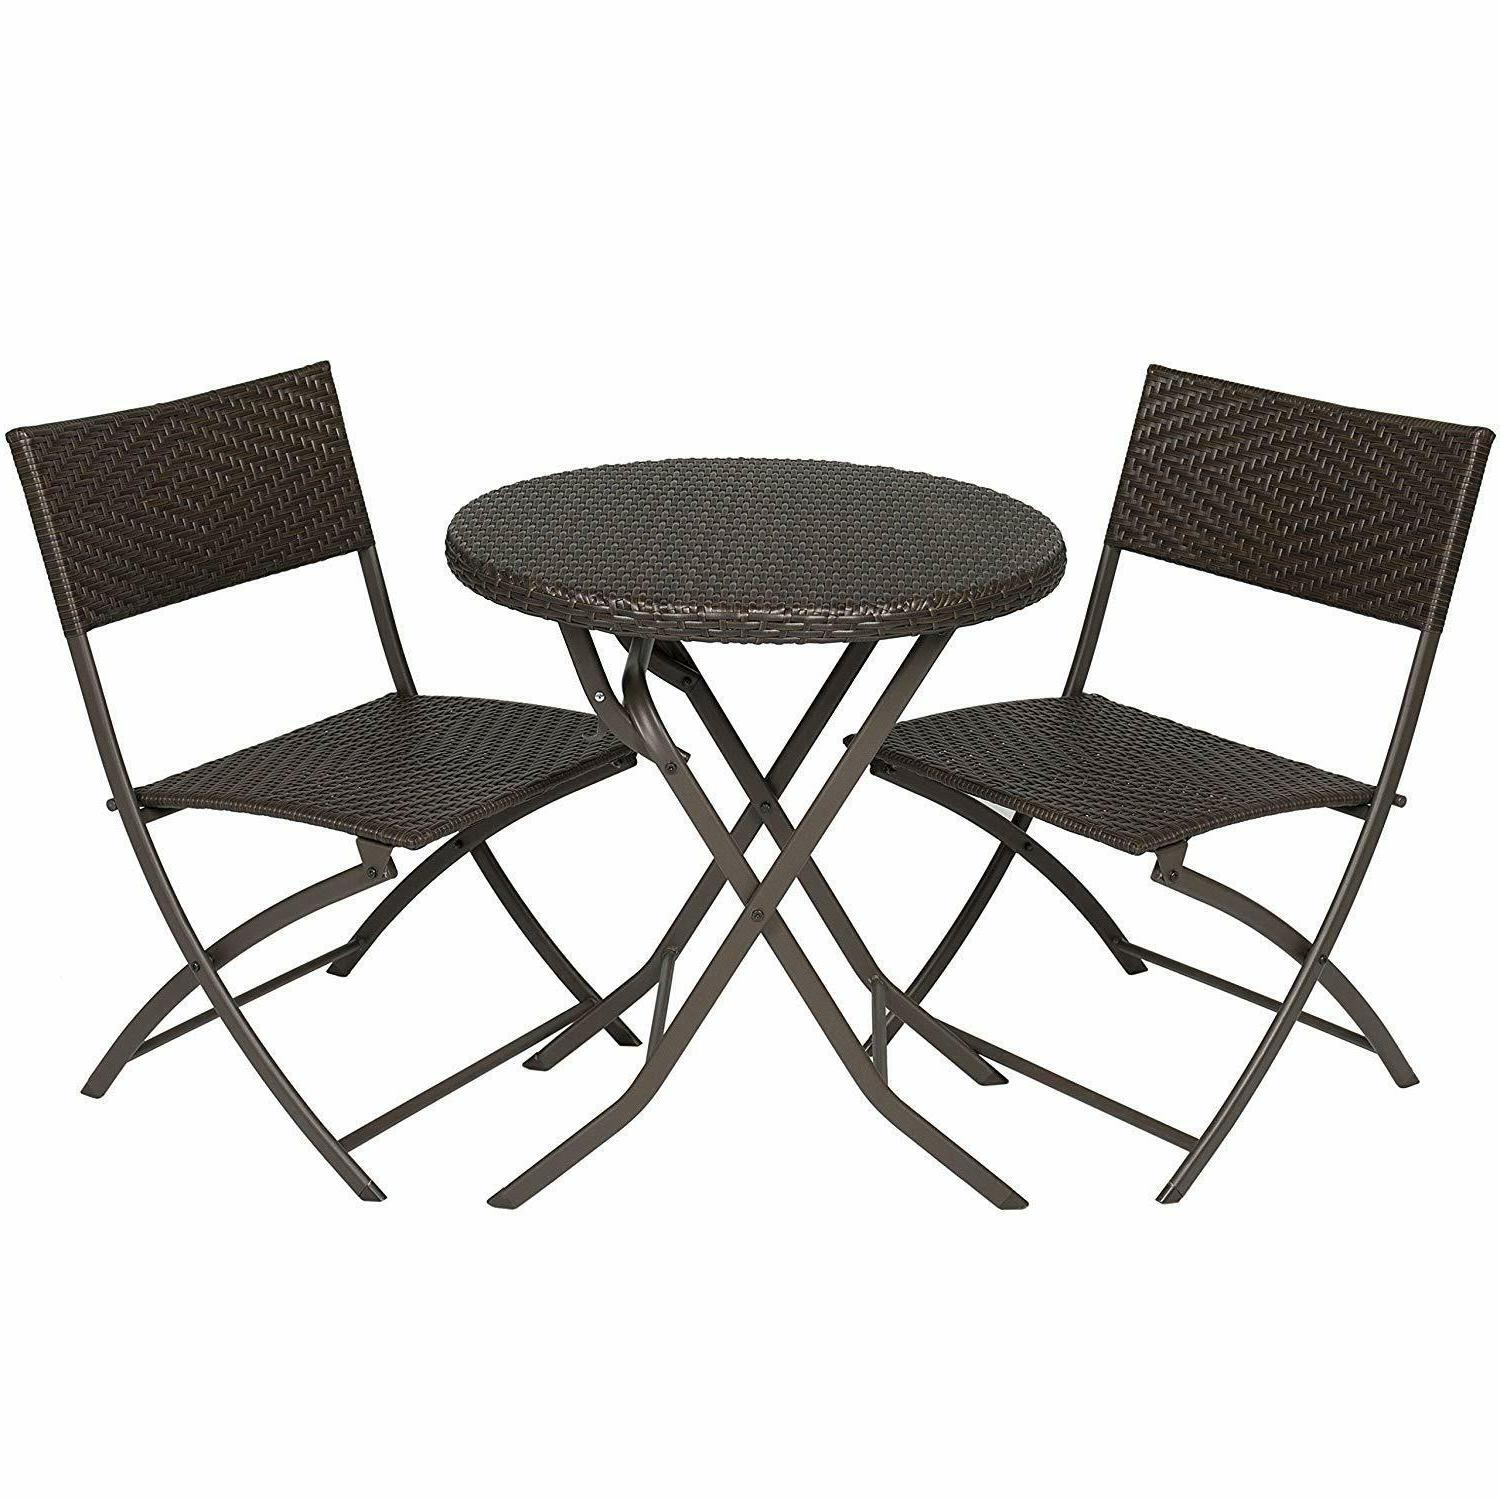 Patio Dining Set Garden 2 Chairs Table